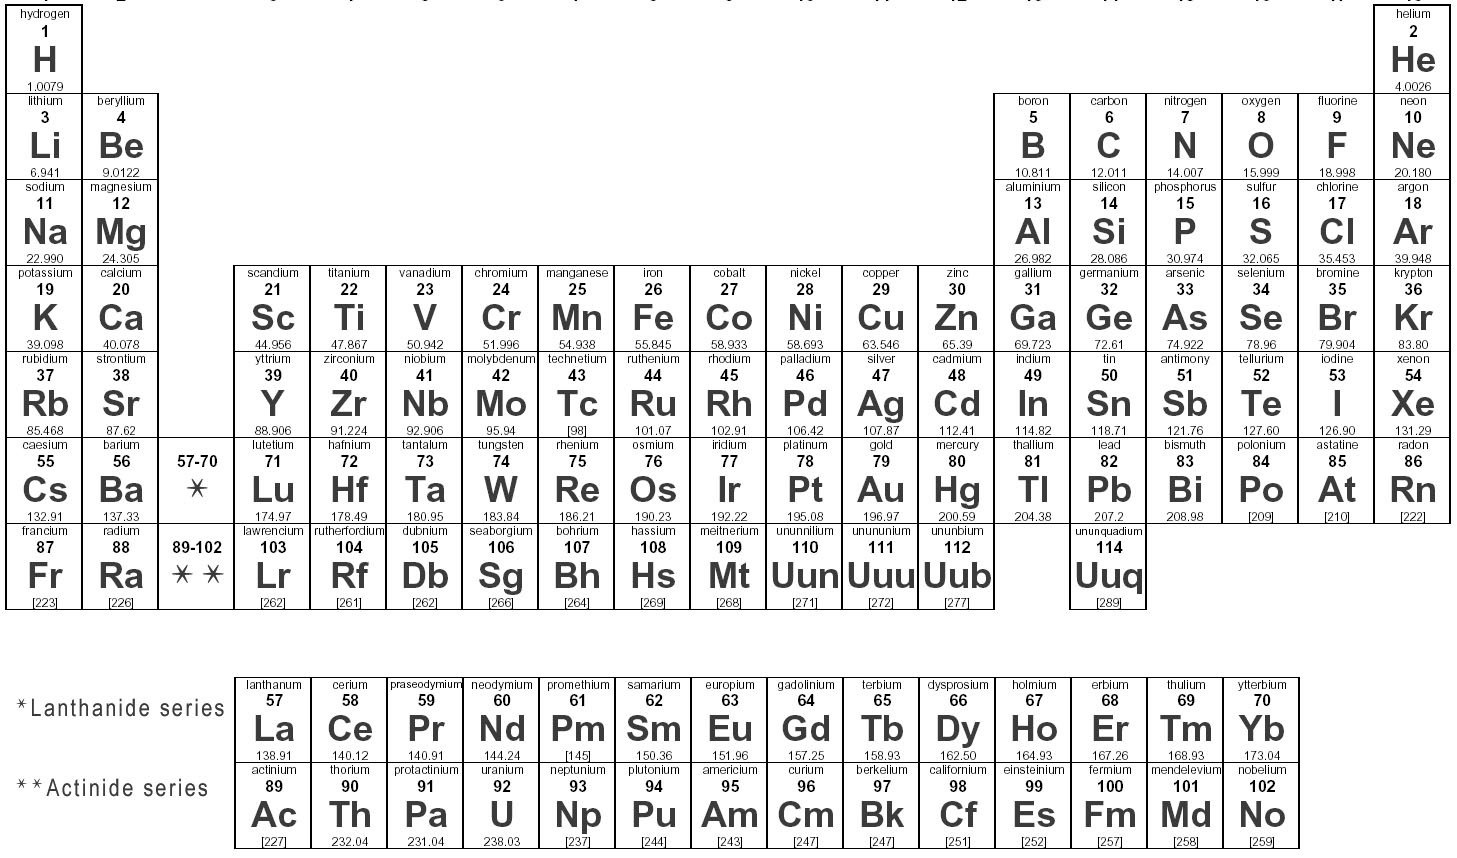 Periodic table of elements with names and symbols quiz quia quiz elements symbols names proton neutron electron periodic table gamestrikefo Choice Image